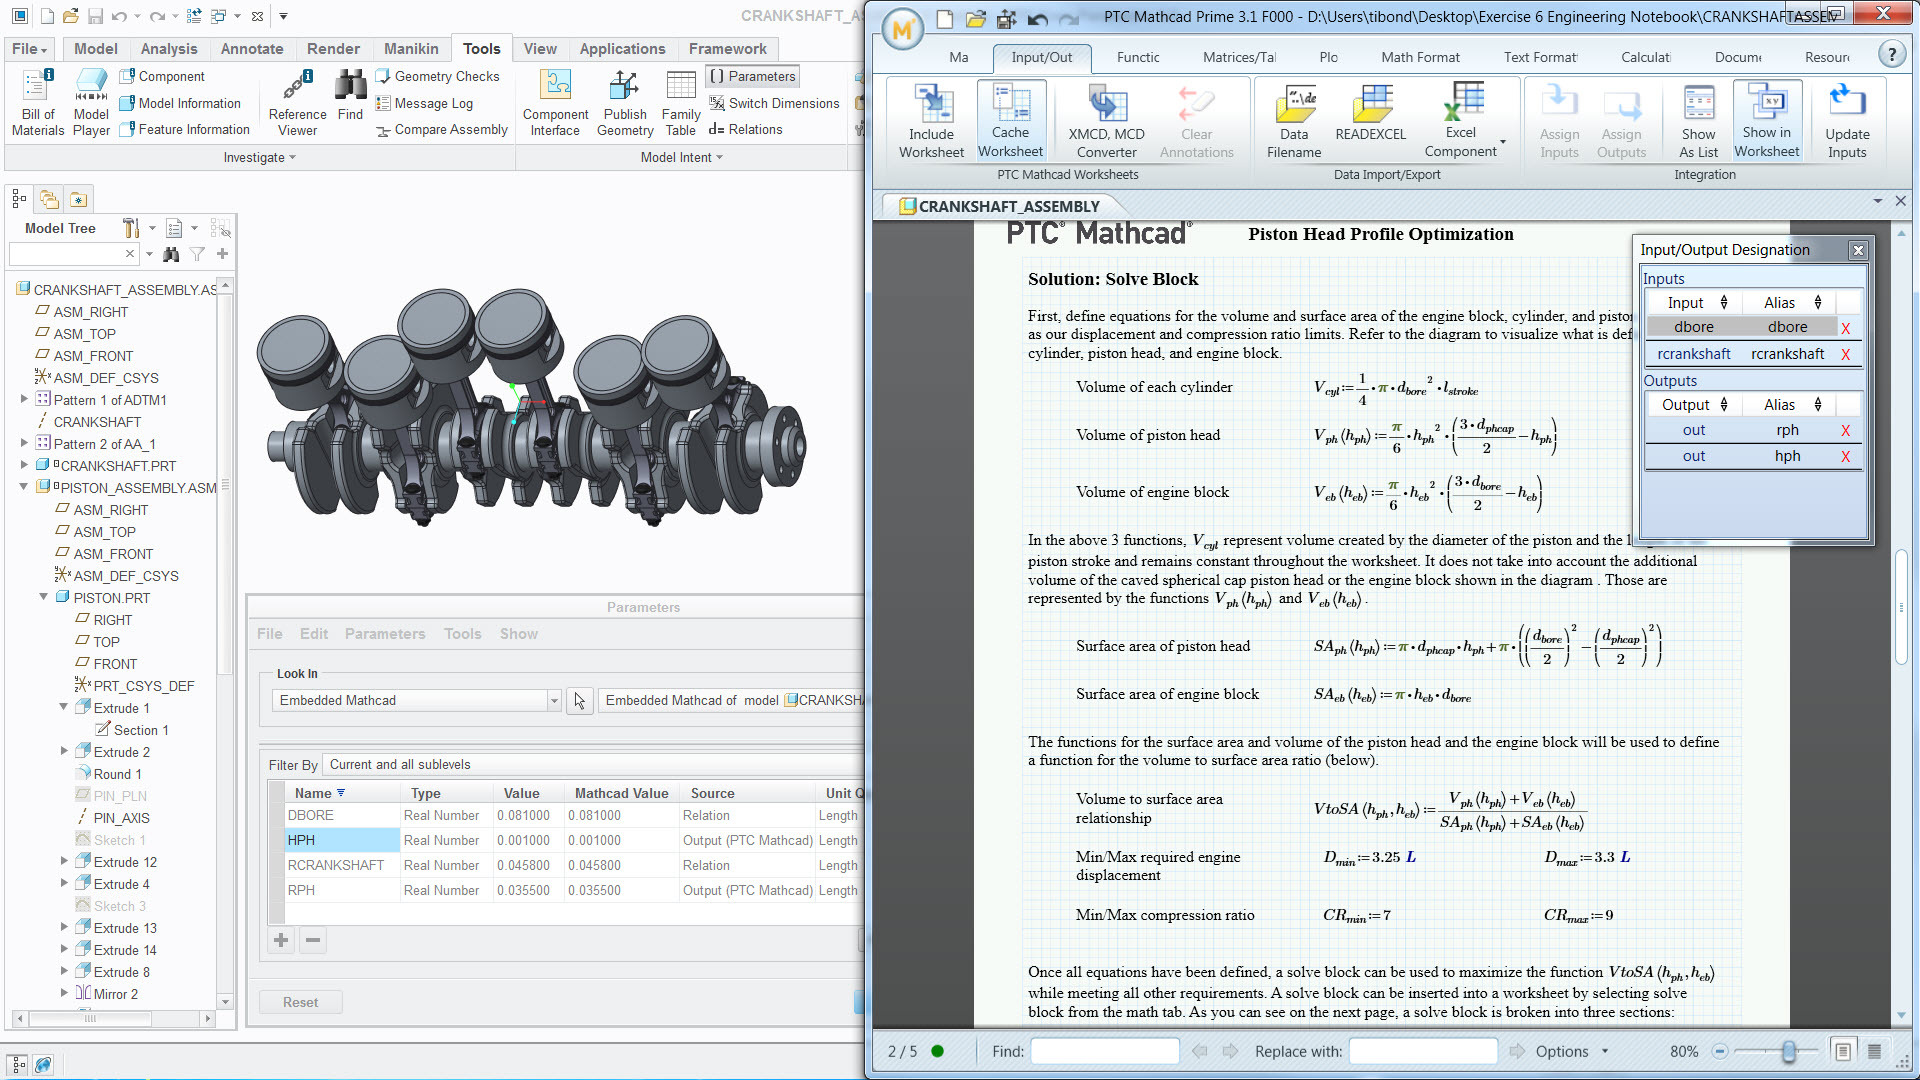 Mathcad - A product from PTC